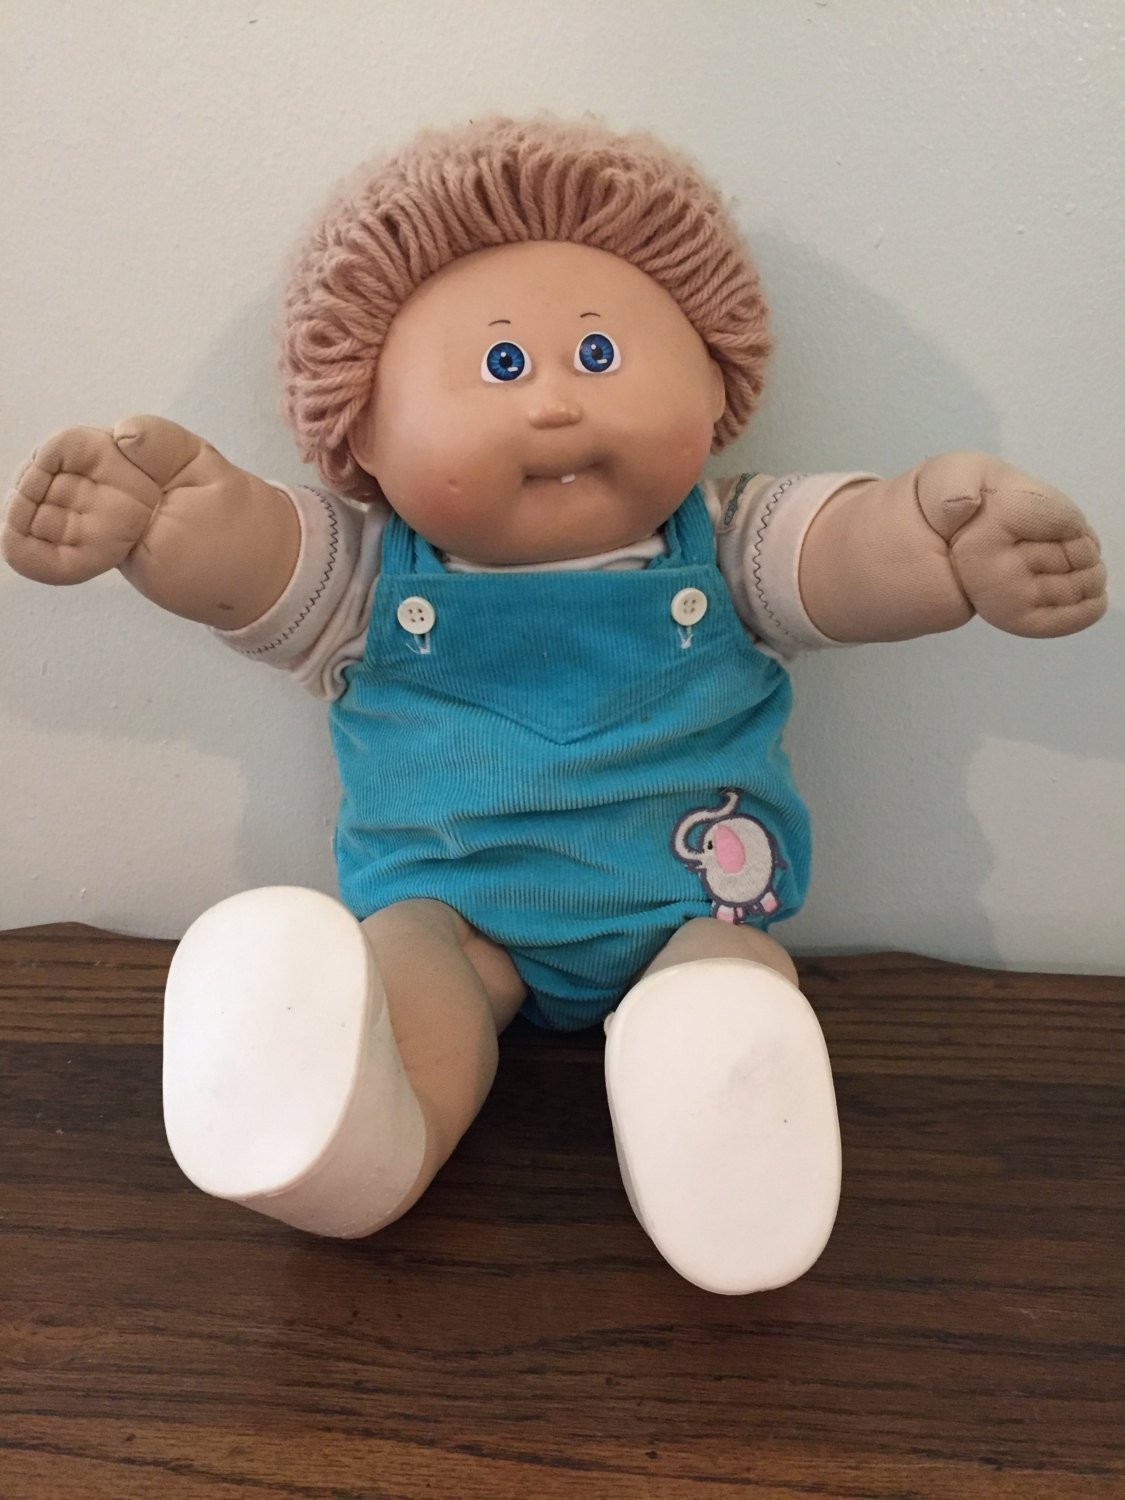 Fresh Vintage Cabbage Patch Kids Doll Luke Tyrone Collectible Cabbage Patch Dolls Of Luxury 42 Pics Collectible Cabbage Patch Dolls